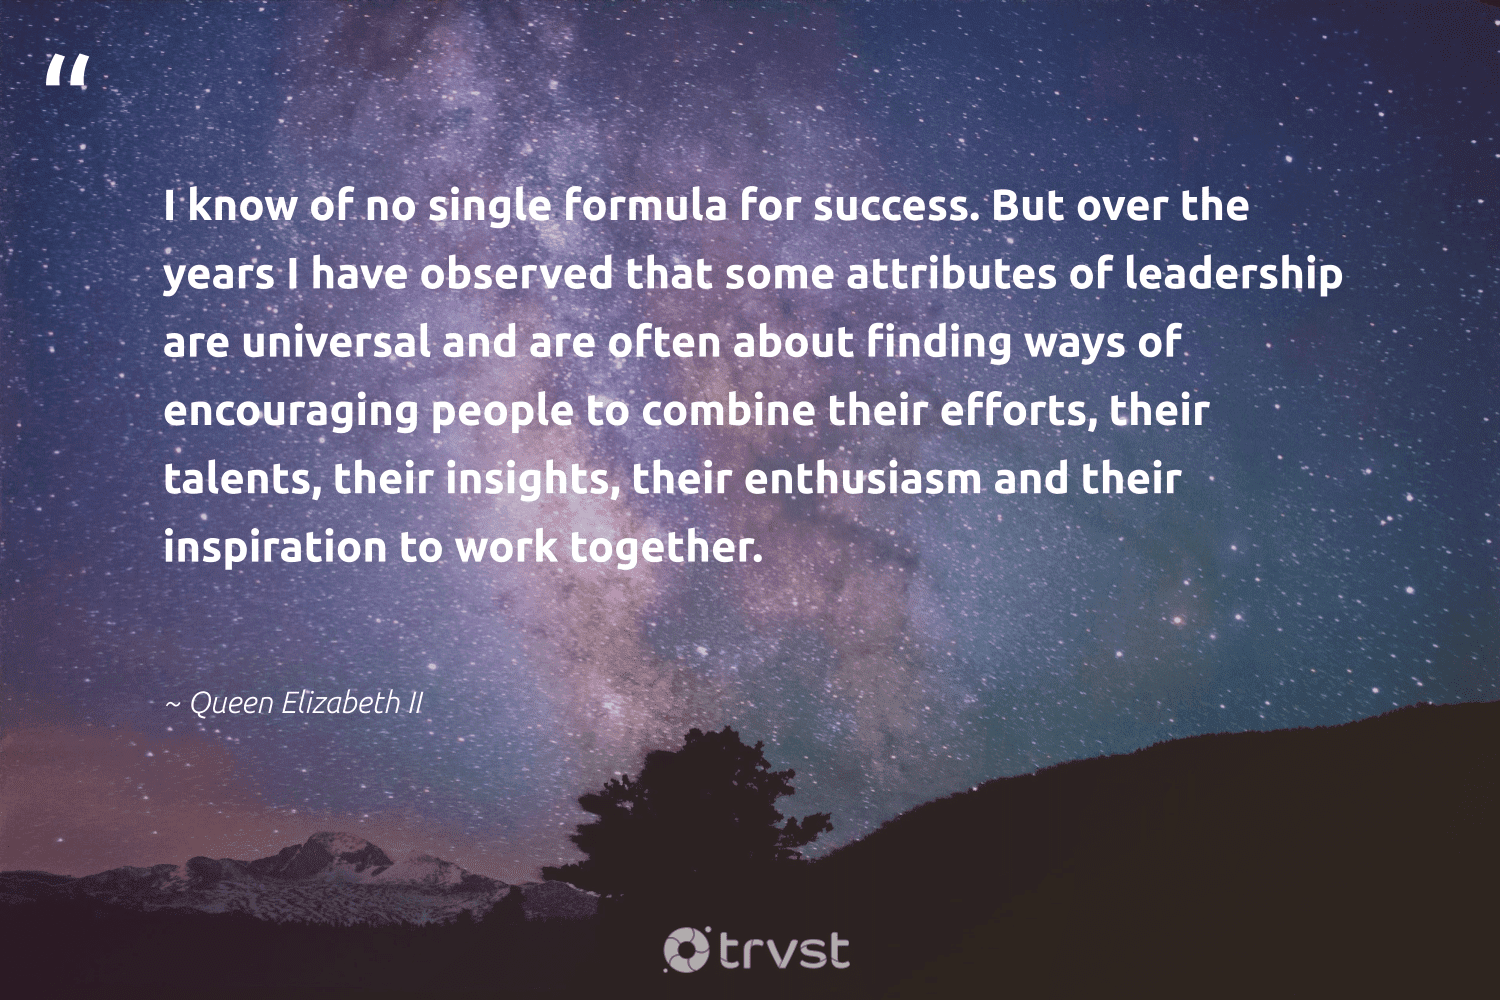 """""""I know of no single formula for success. But over the years I have observed that some attributes of leadership are universal and are often about finding ways of encouraging people to combine their efforts, their talents, their insights, their enthusiasm and their inspiration to work together.""""  - Queen Elizabeth II #trvst #quotes #leadership #success #leadershipqualities #begreat #nevergiveup #dosomething #leadershipdevelopment #softskills #futureofwork #dotherightthing"""